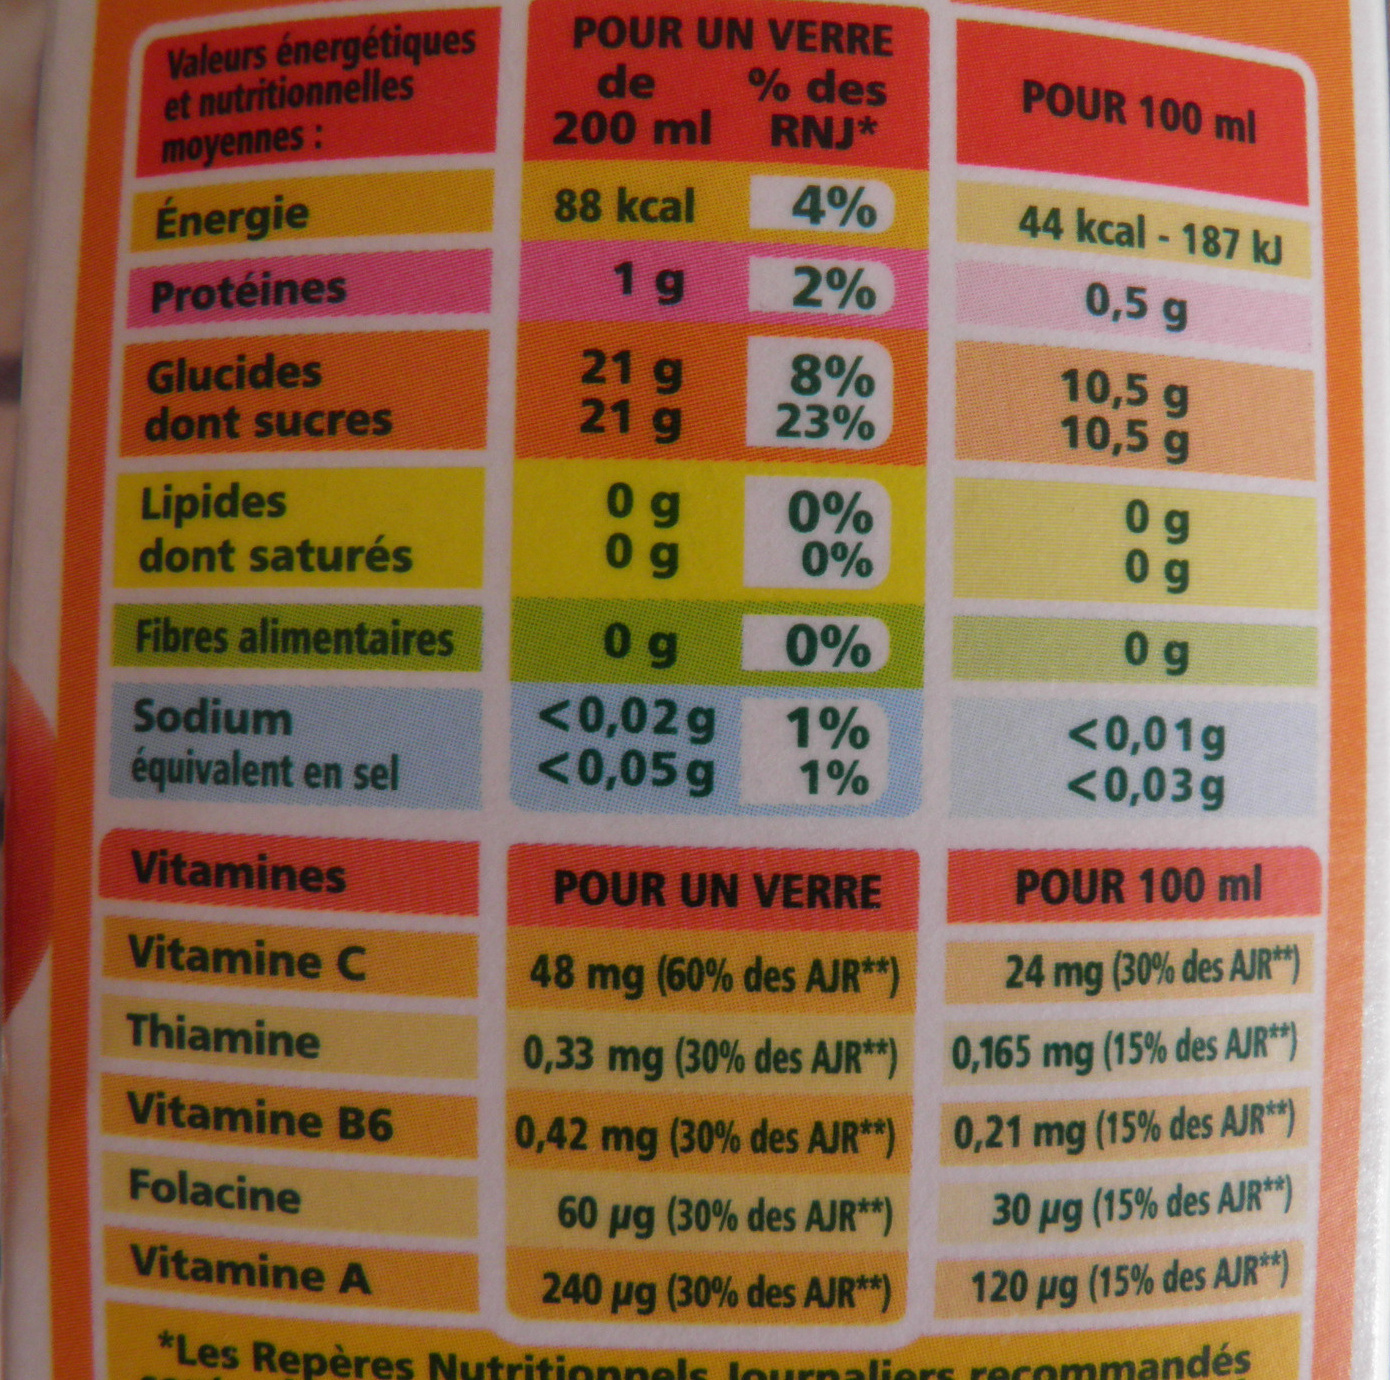 Jus Multivitaminé - Flash pasteurisé - Source de 5 vitamines - Informations nutritionnelles - fr